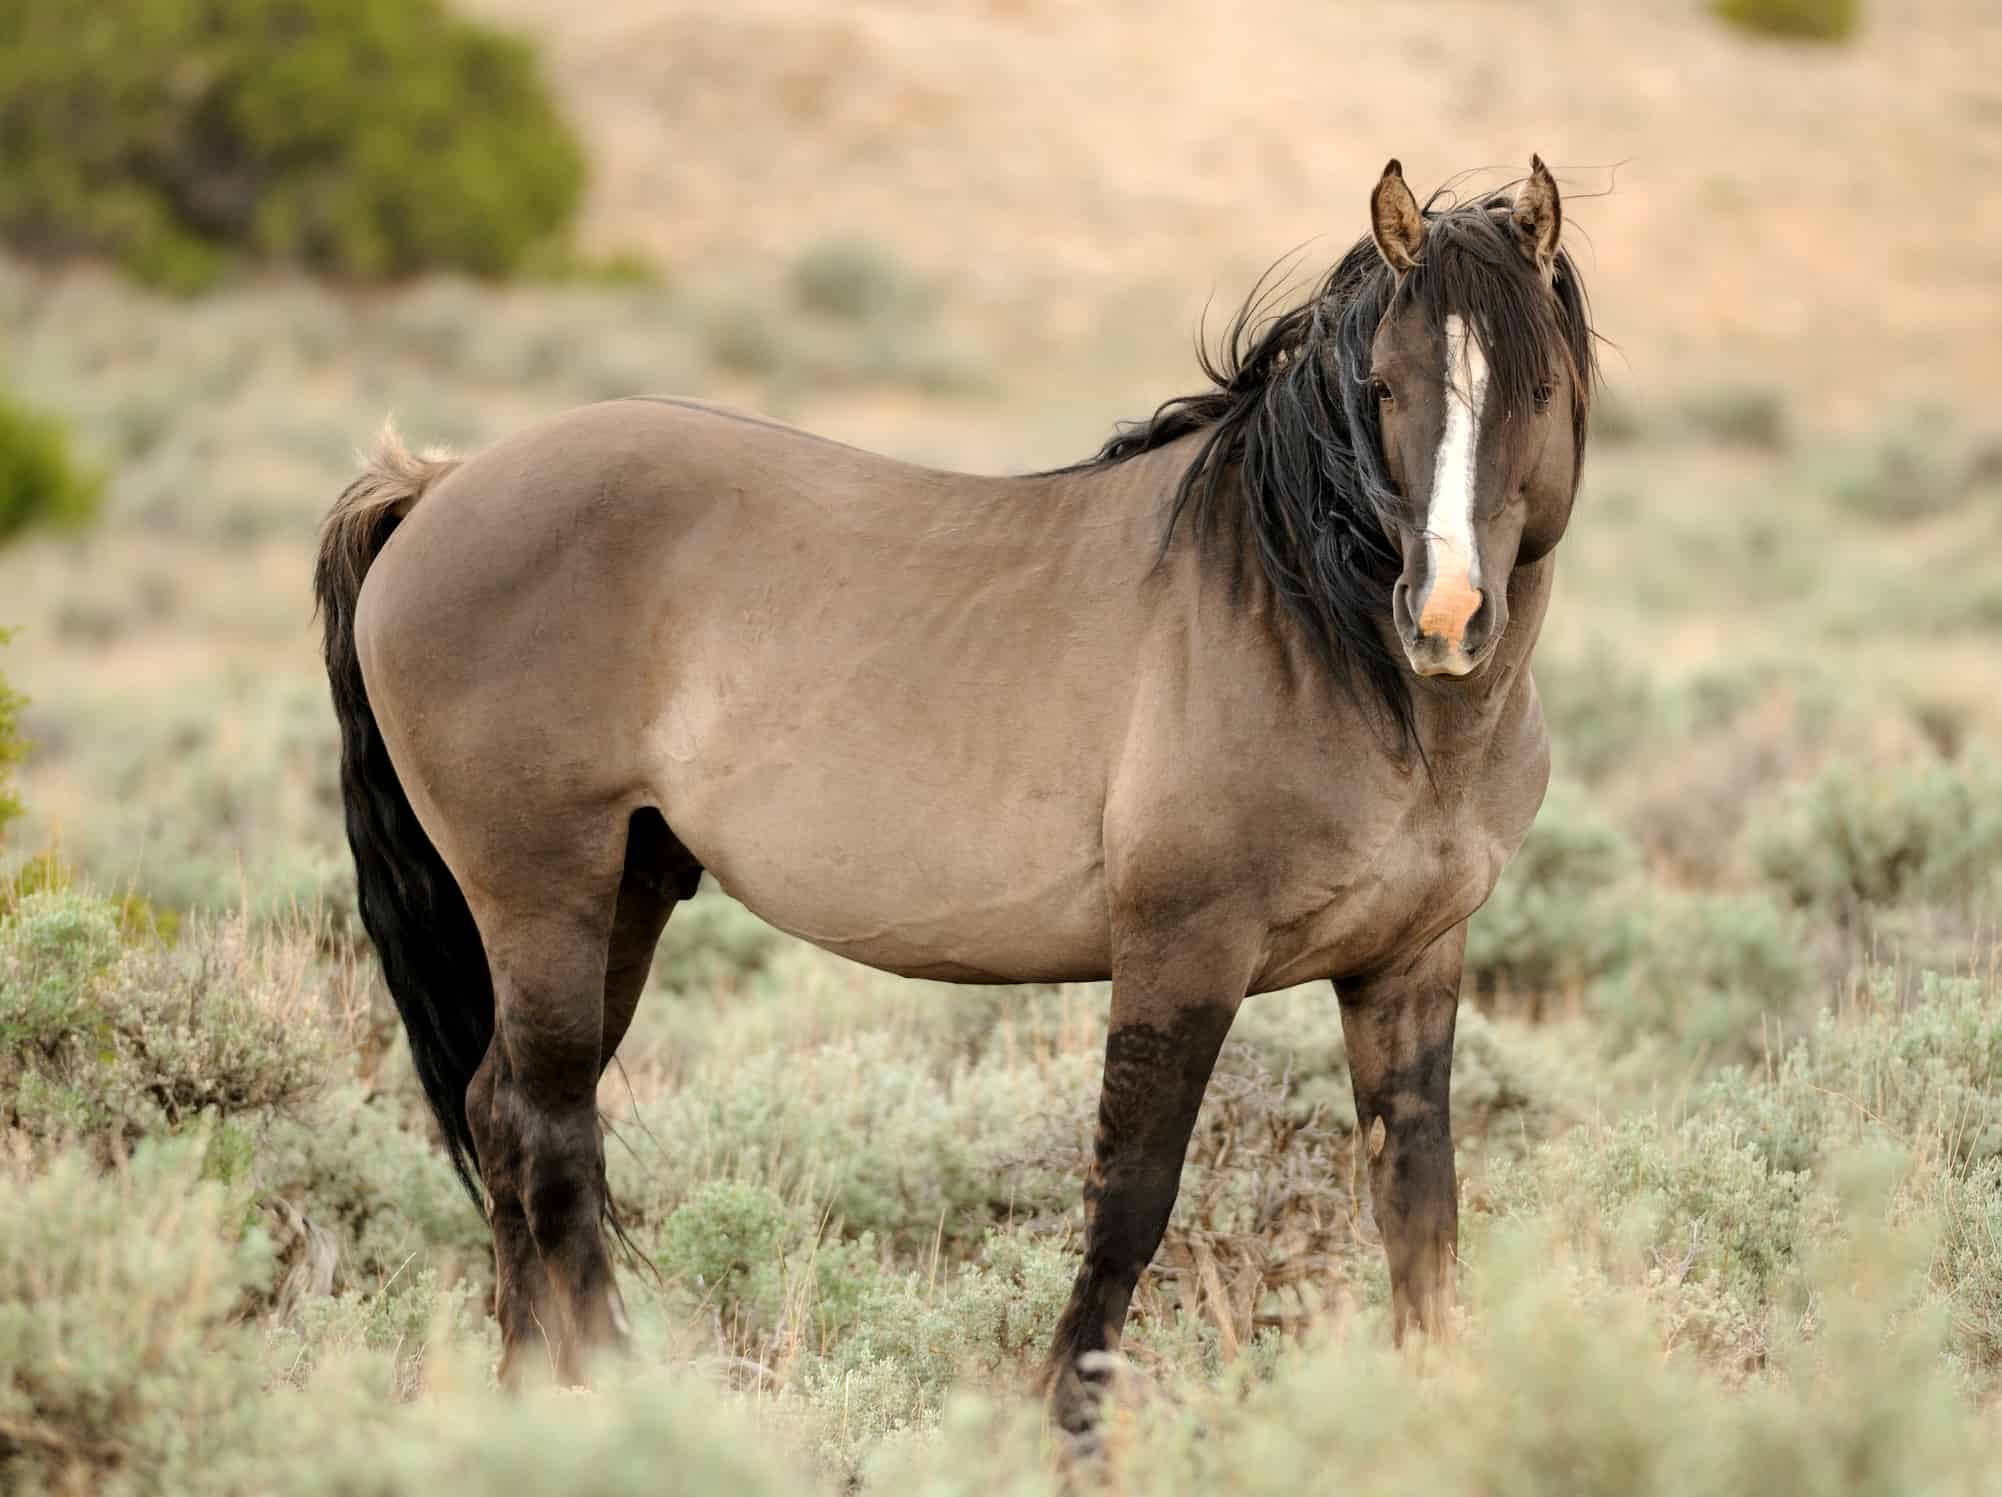 Blm Ponders Cash Incentive For Mustang Adopters The Horse